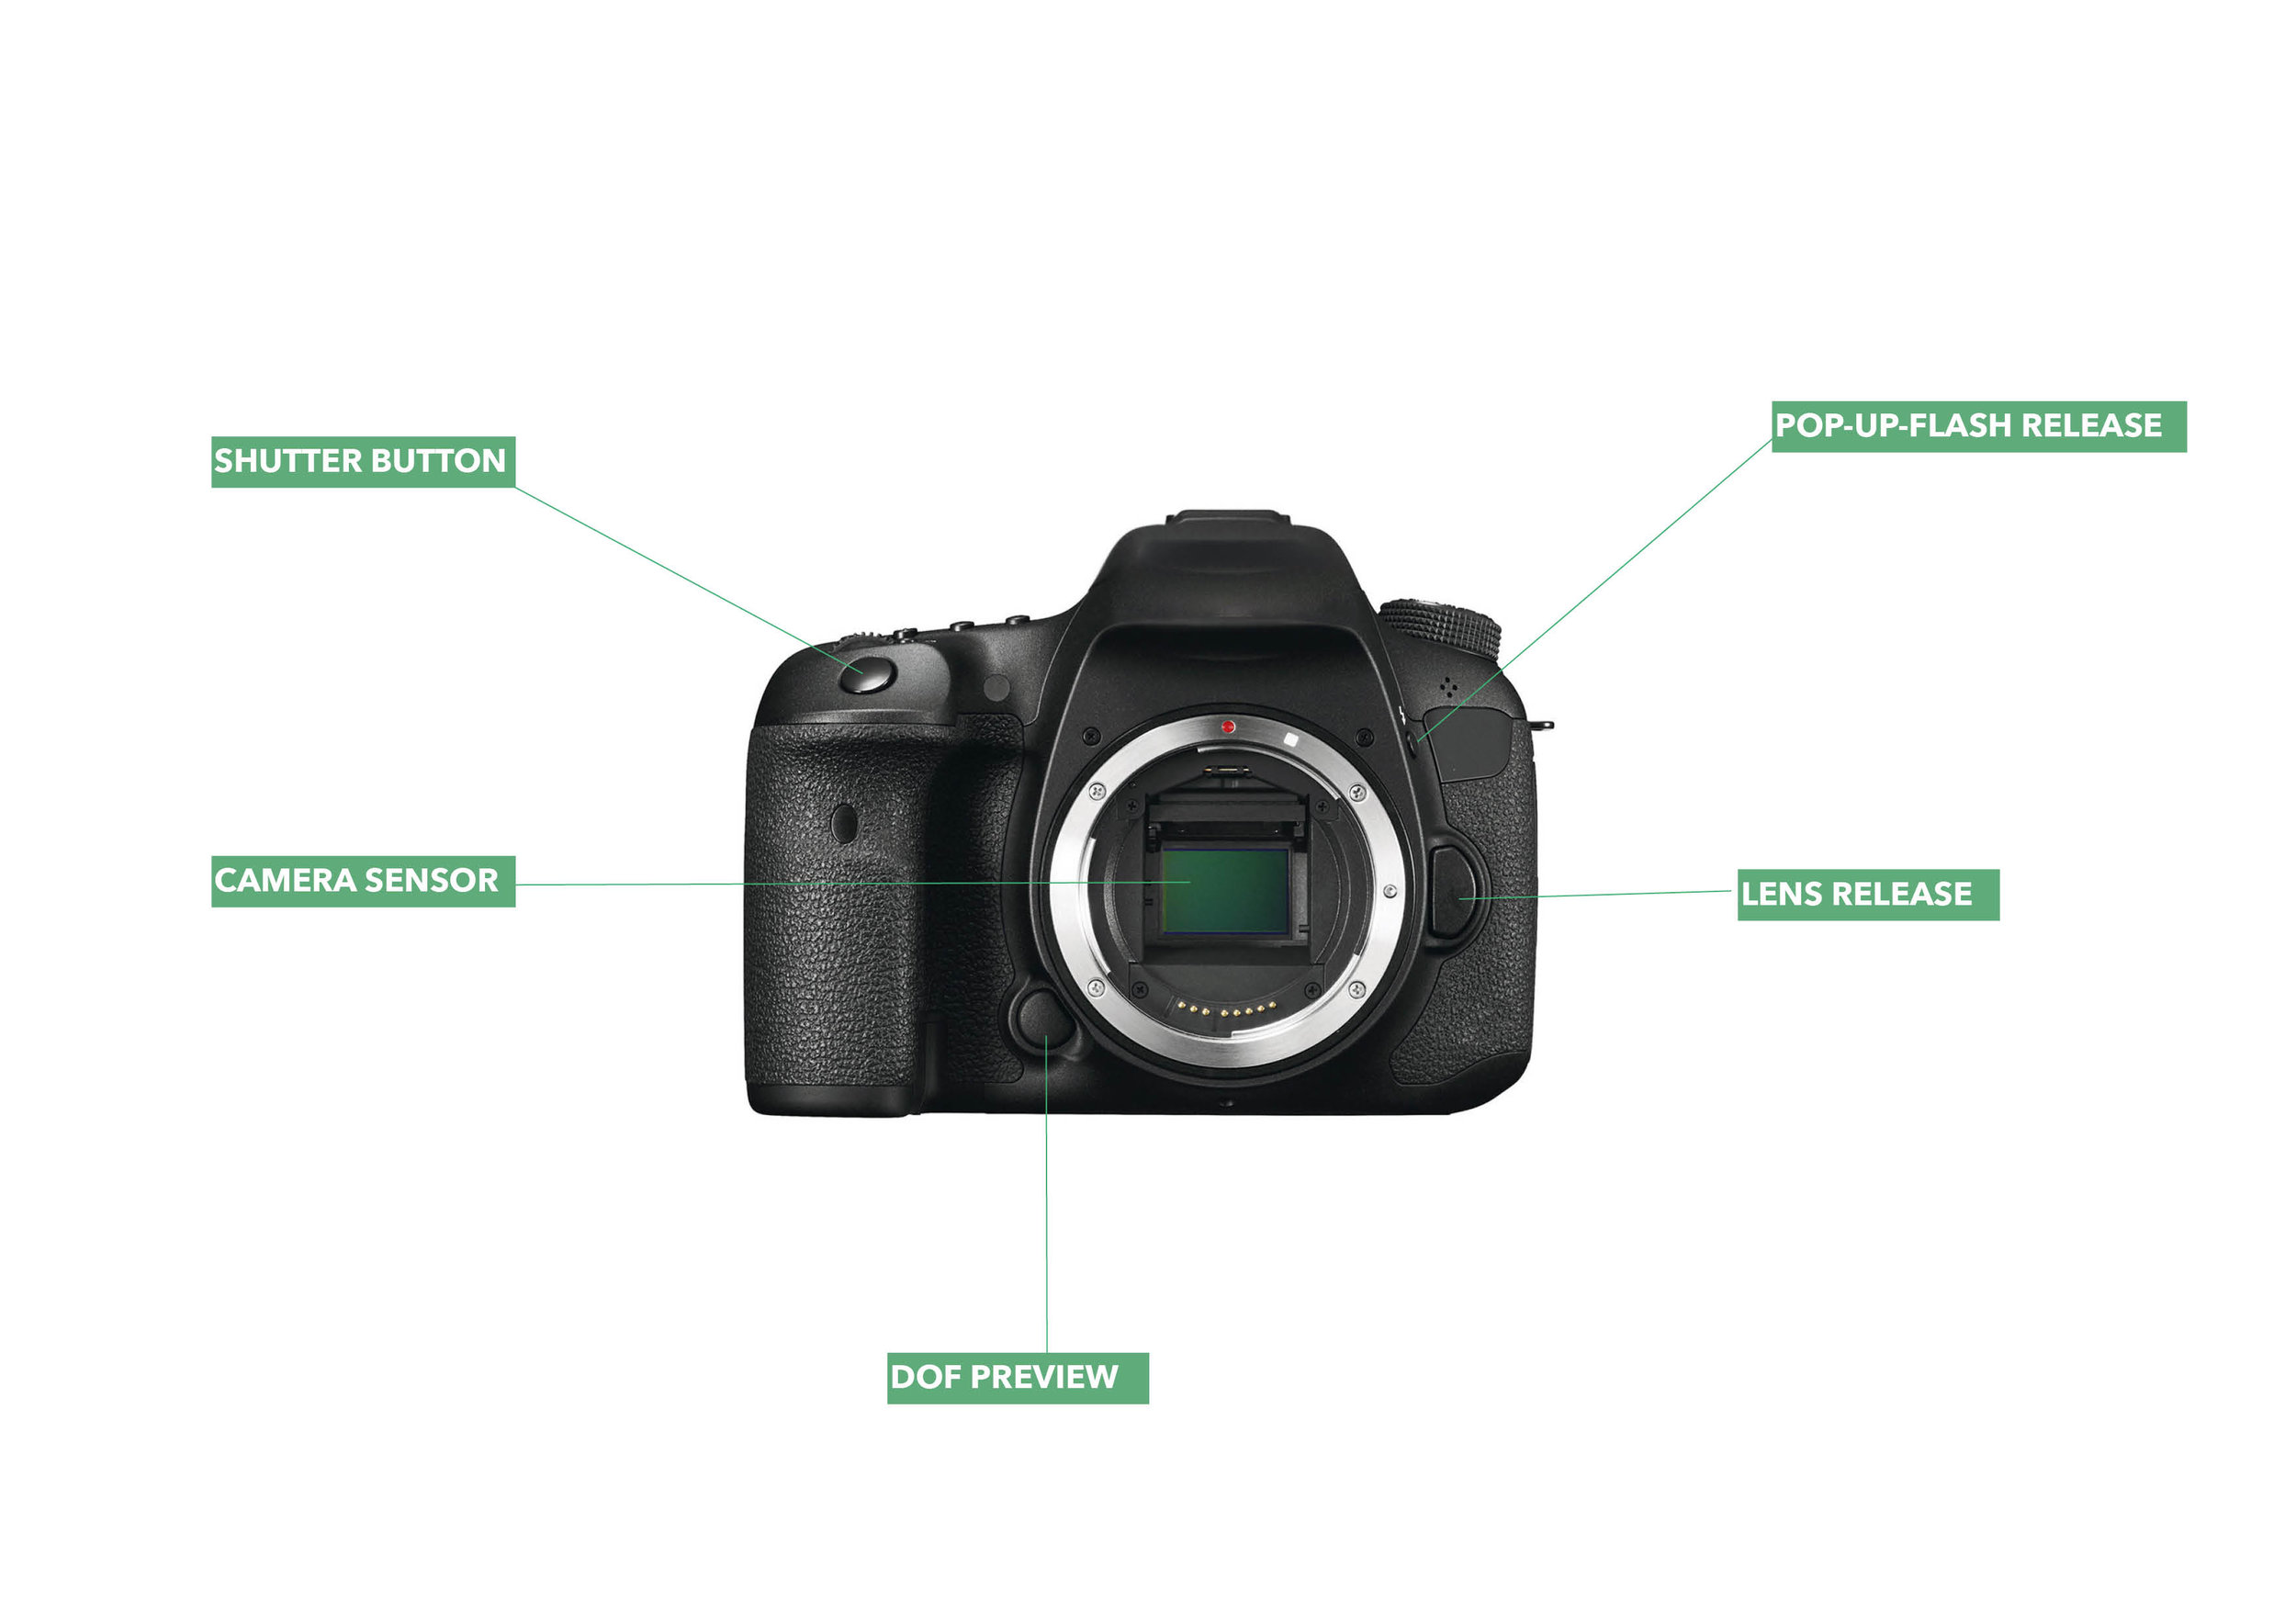 A photo of a DSLR camera without the lens attached, showing the camera sensor